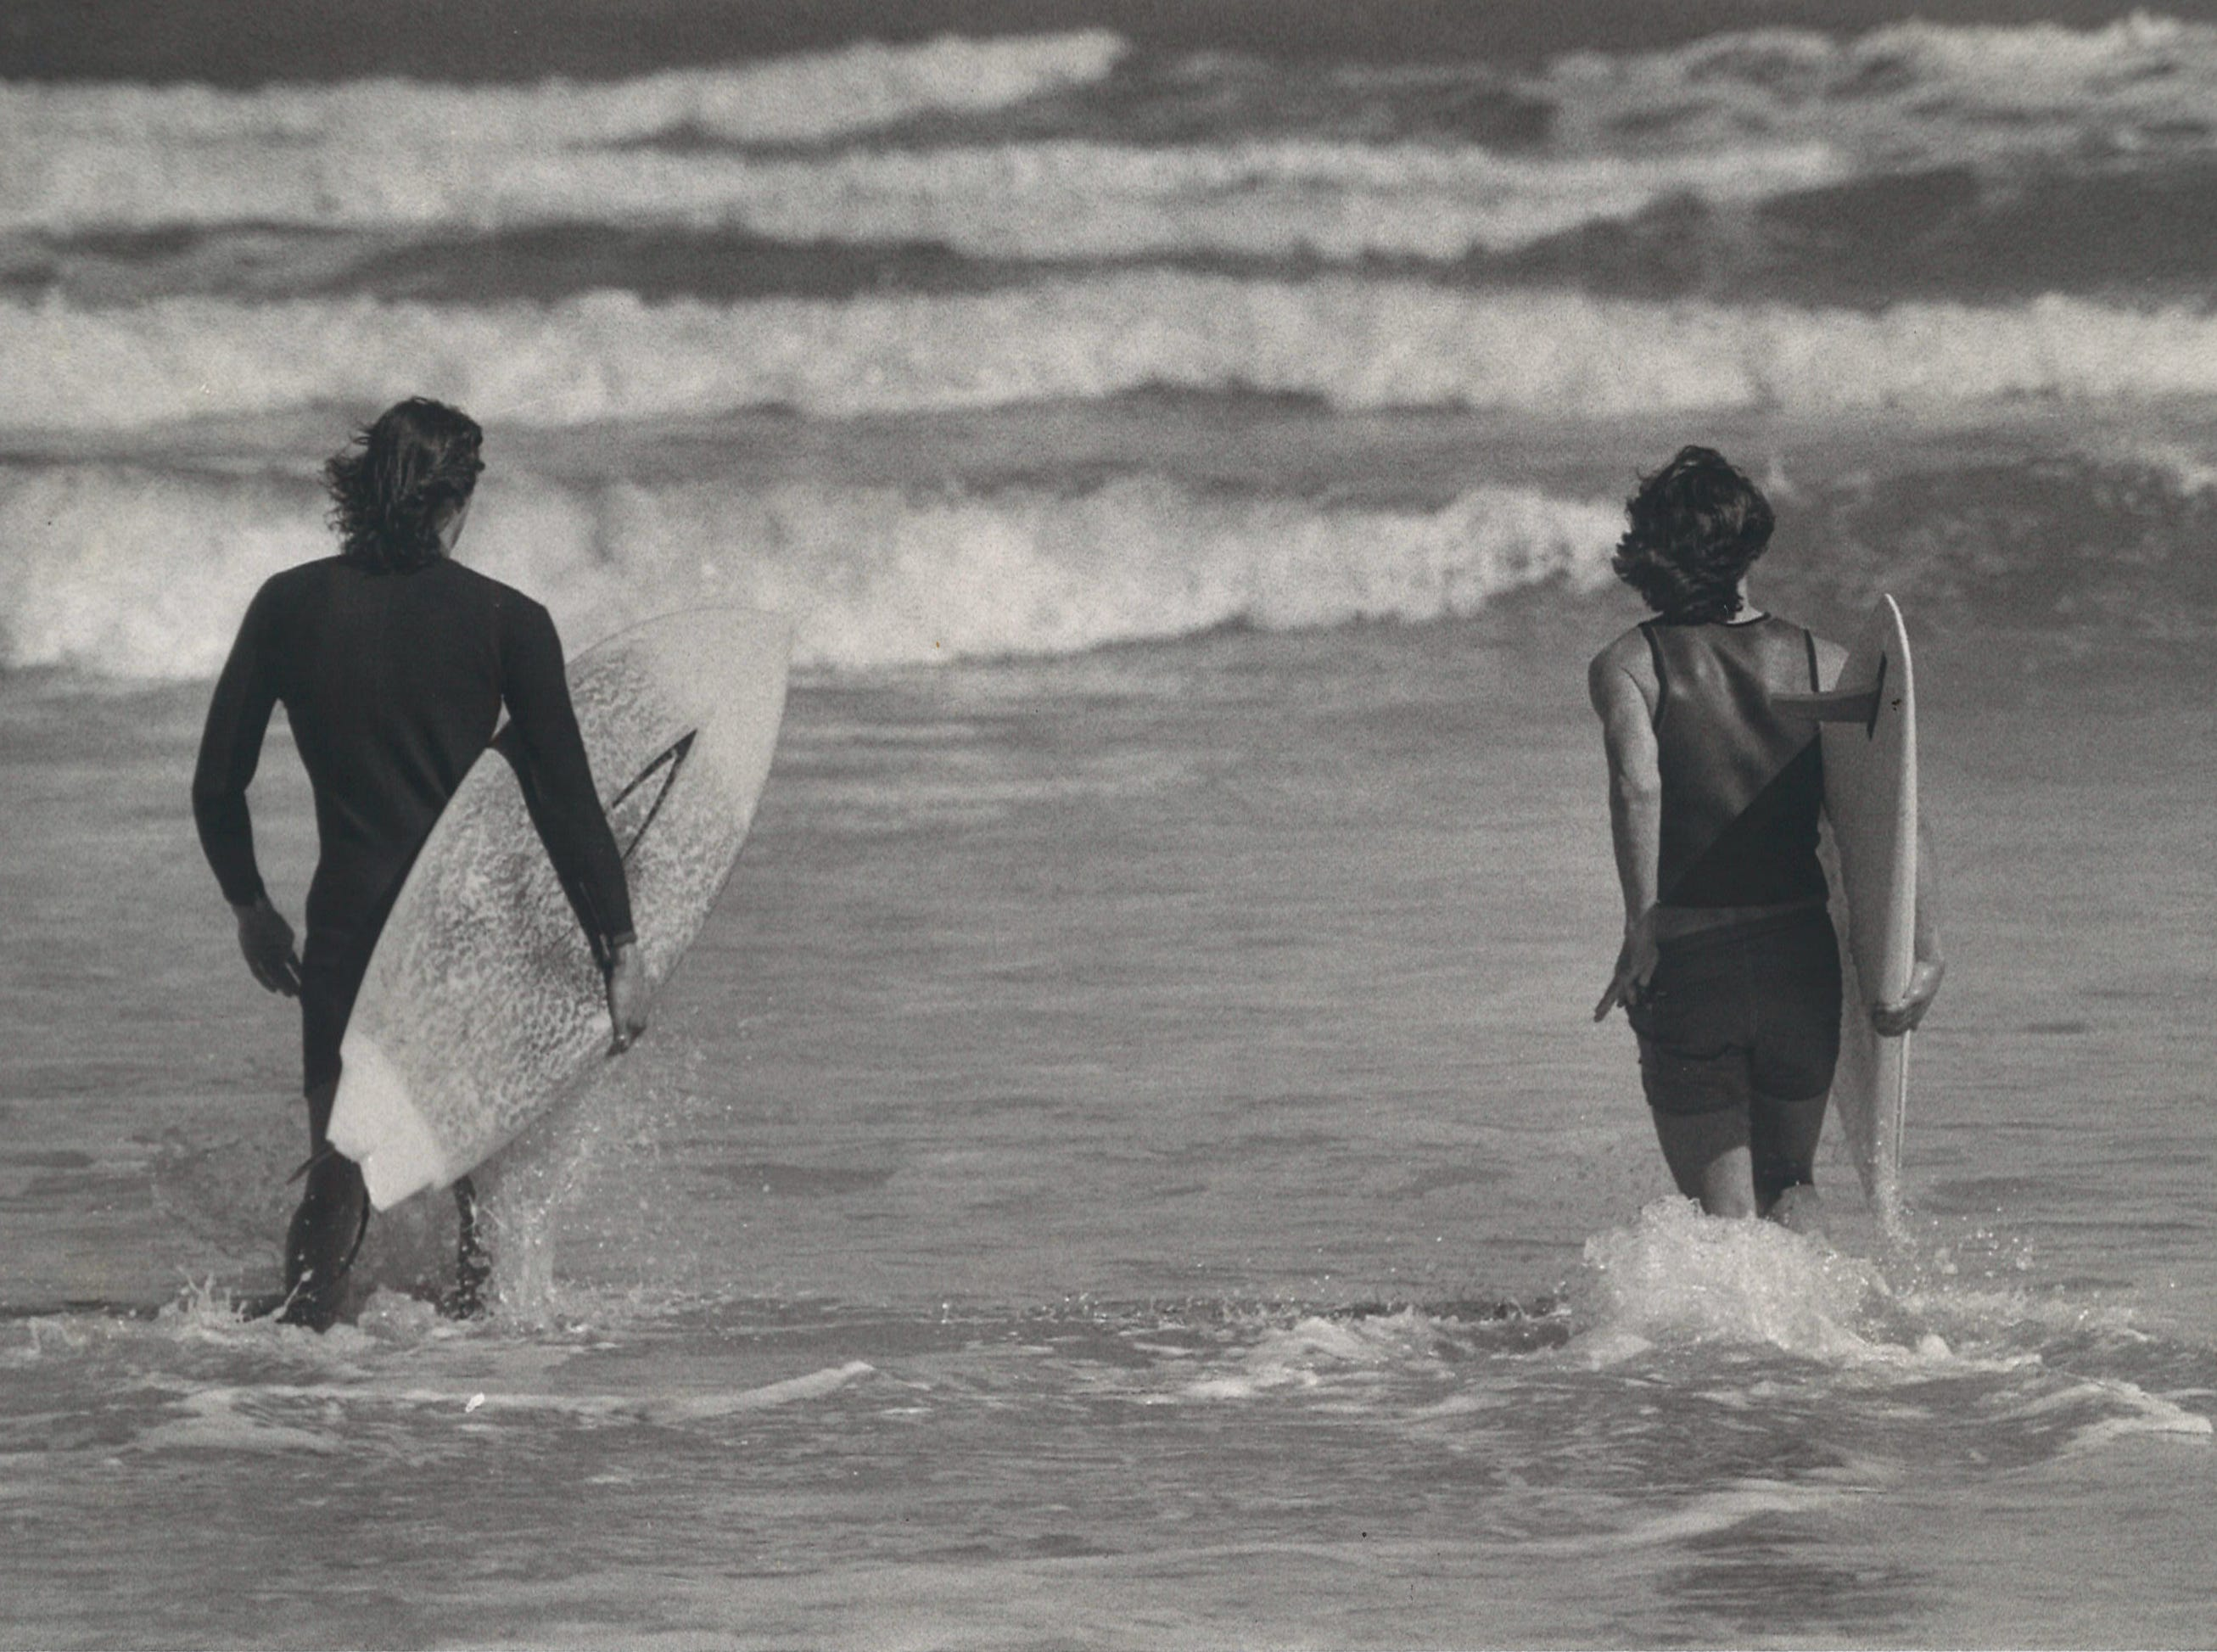 Surfers head out into the waves on Mustang Island in Corpus Christi in April 1977.